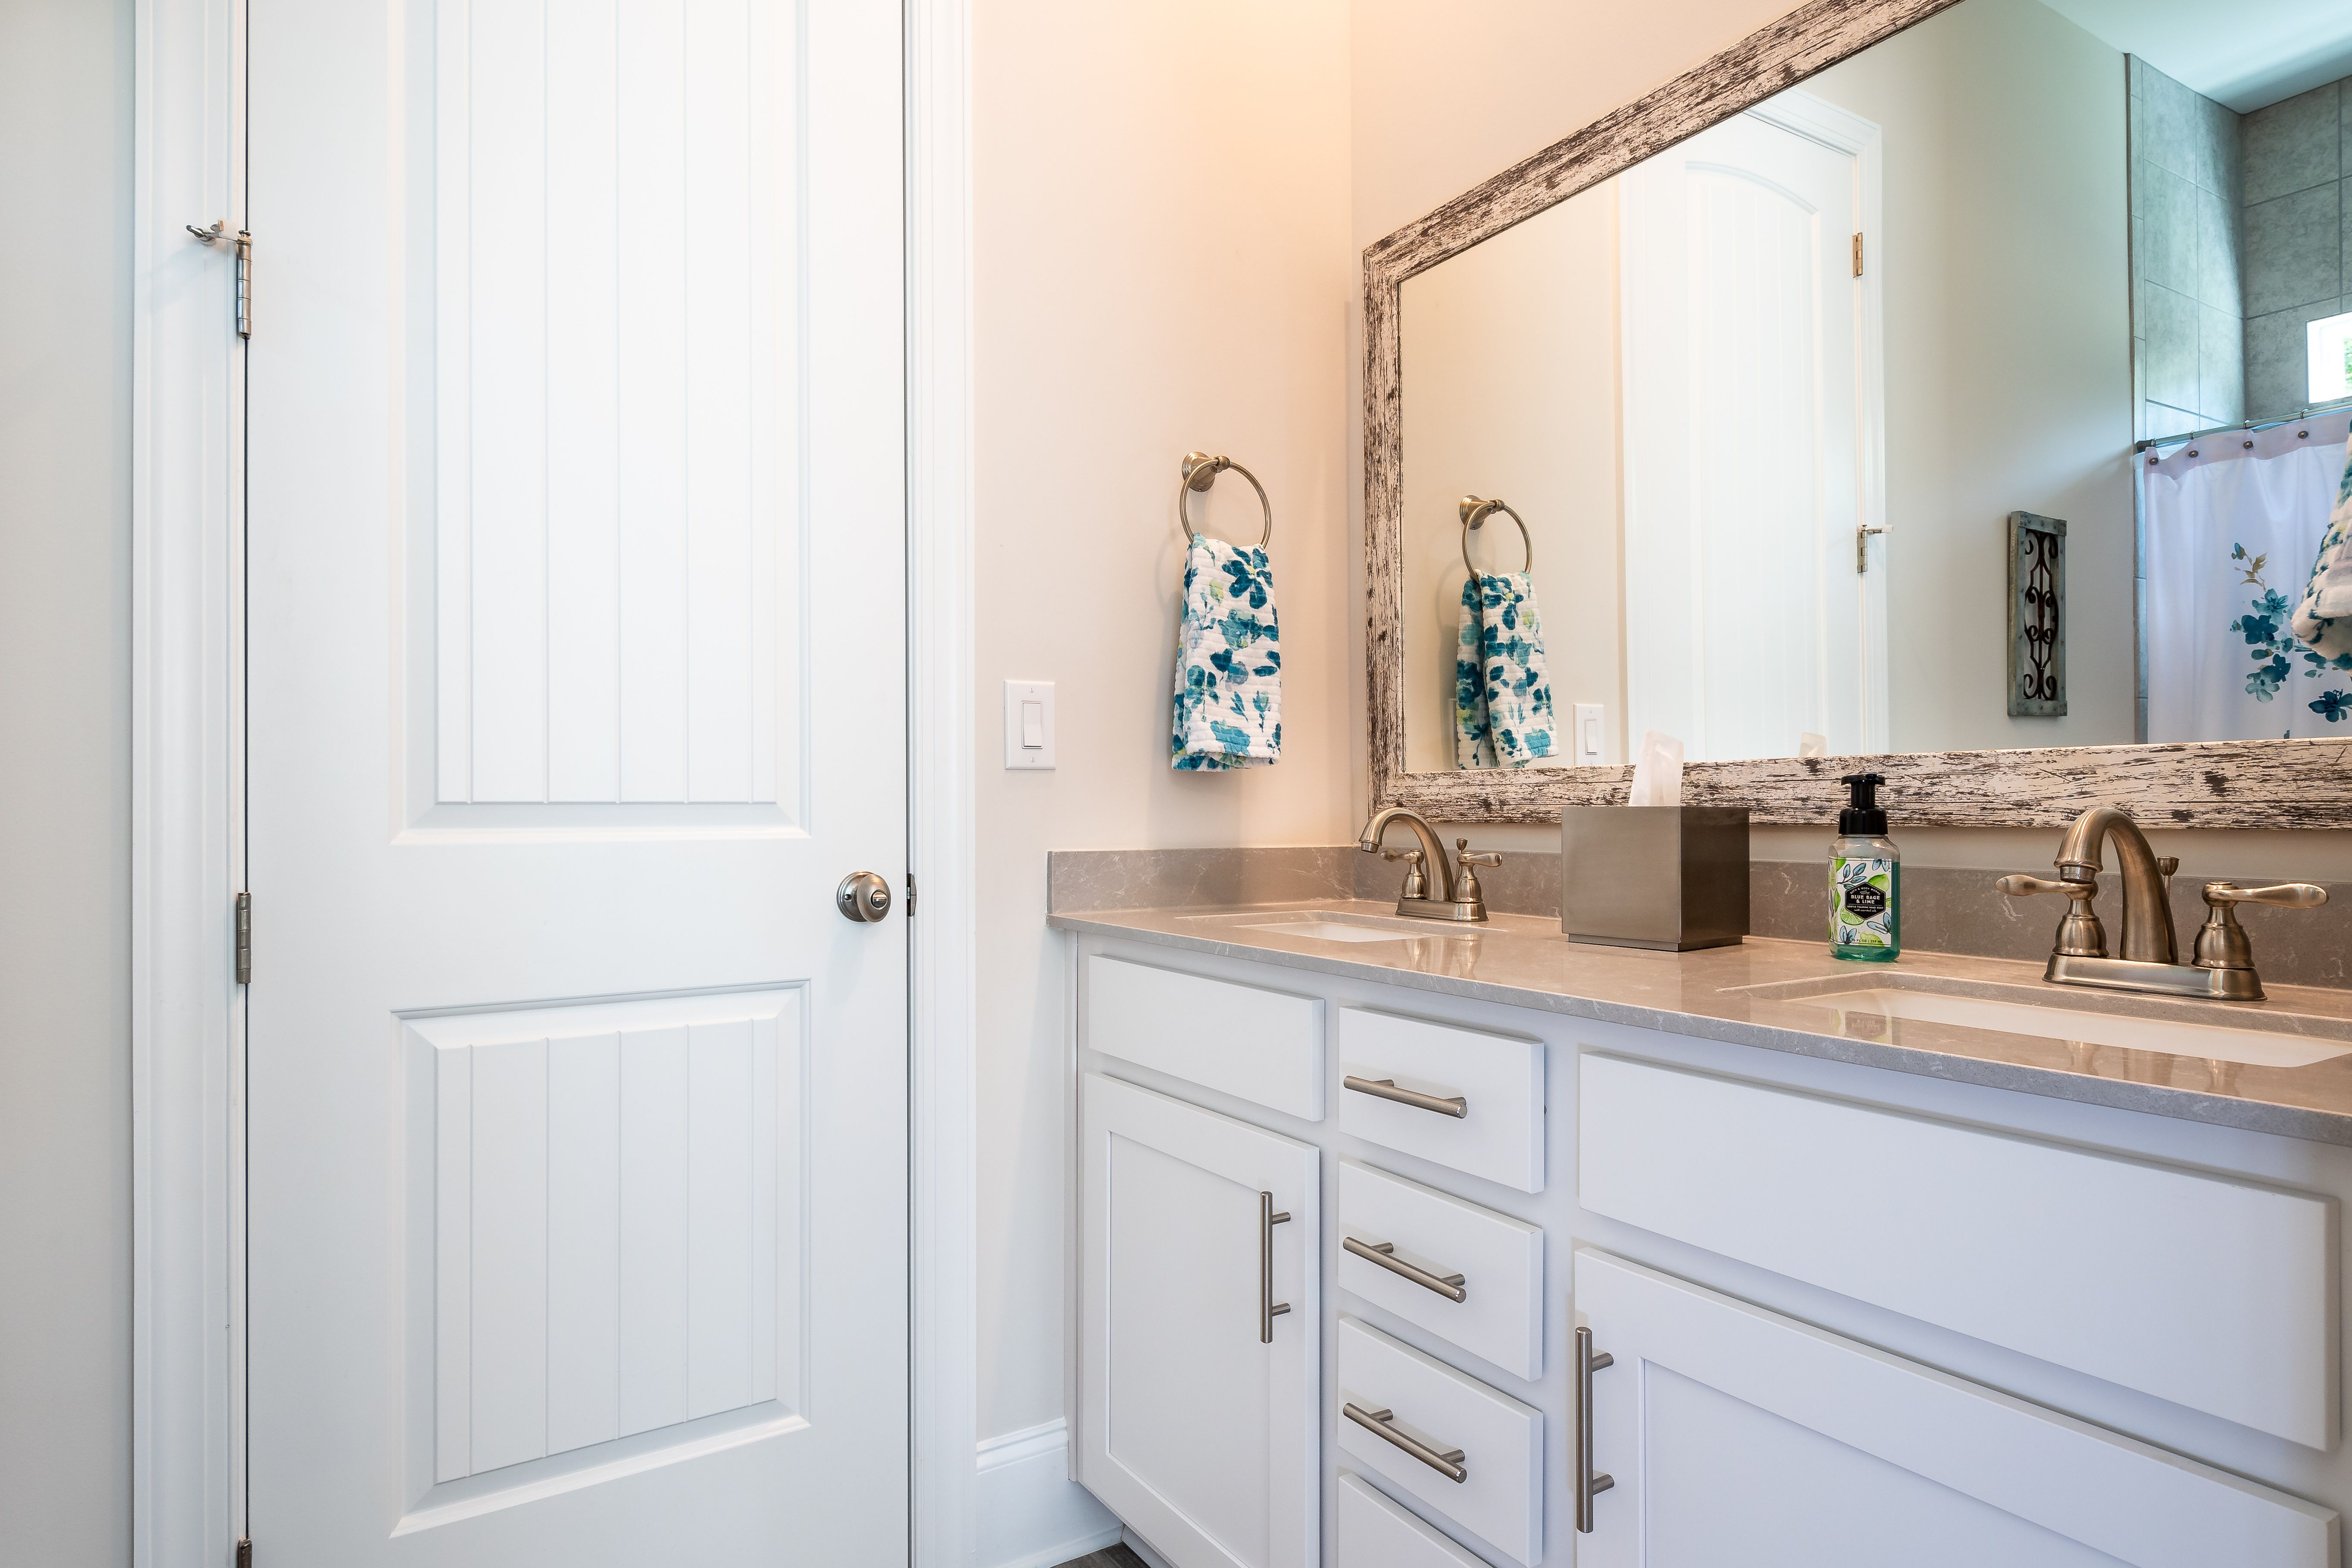 Bathroom featured in the Columbia with Retreat By Greybrook Homes in Charlotte, NC